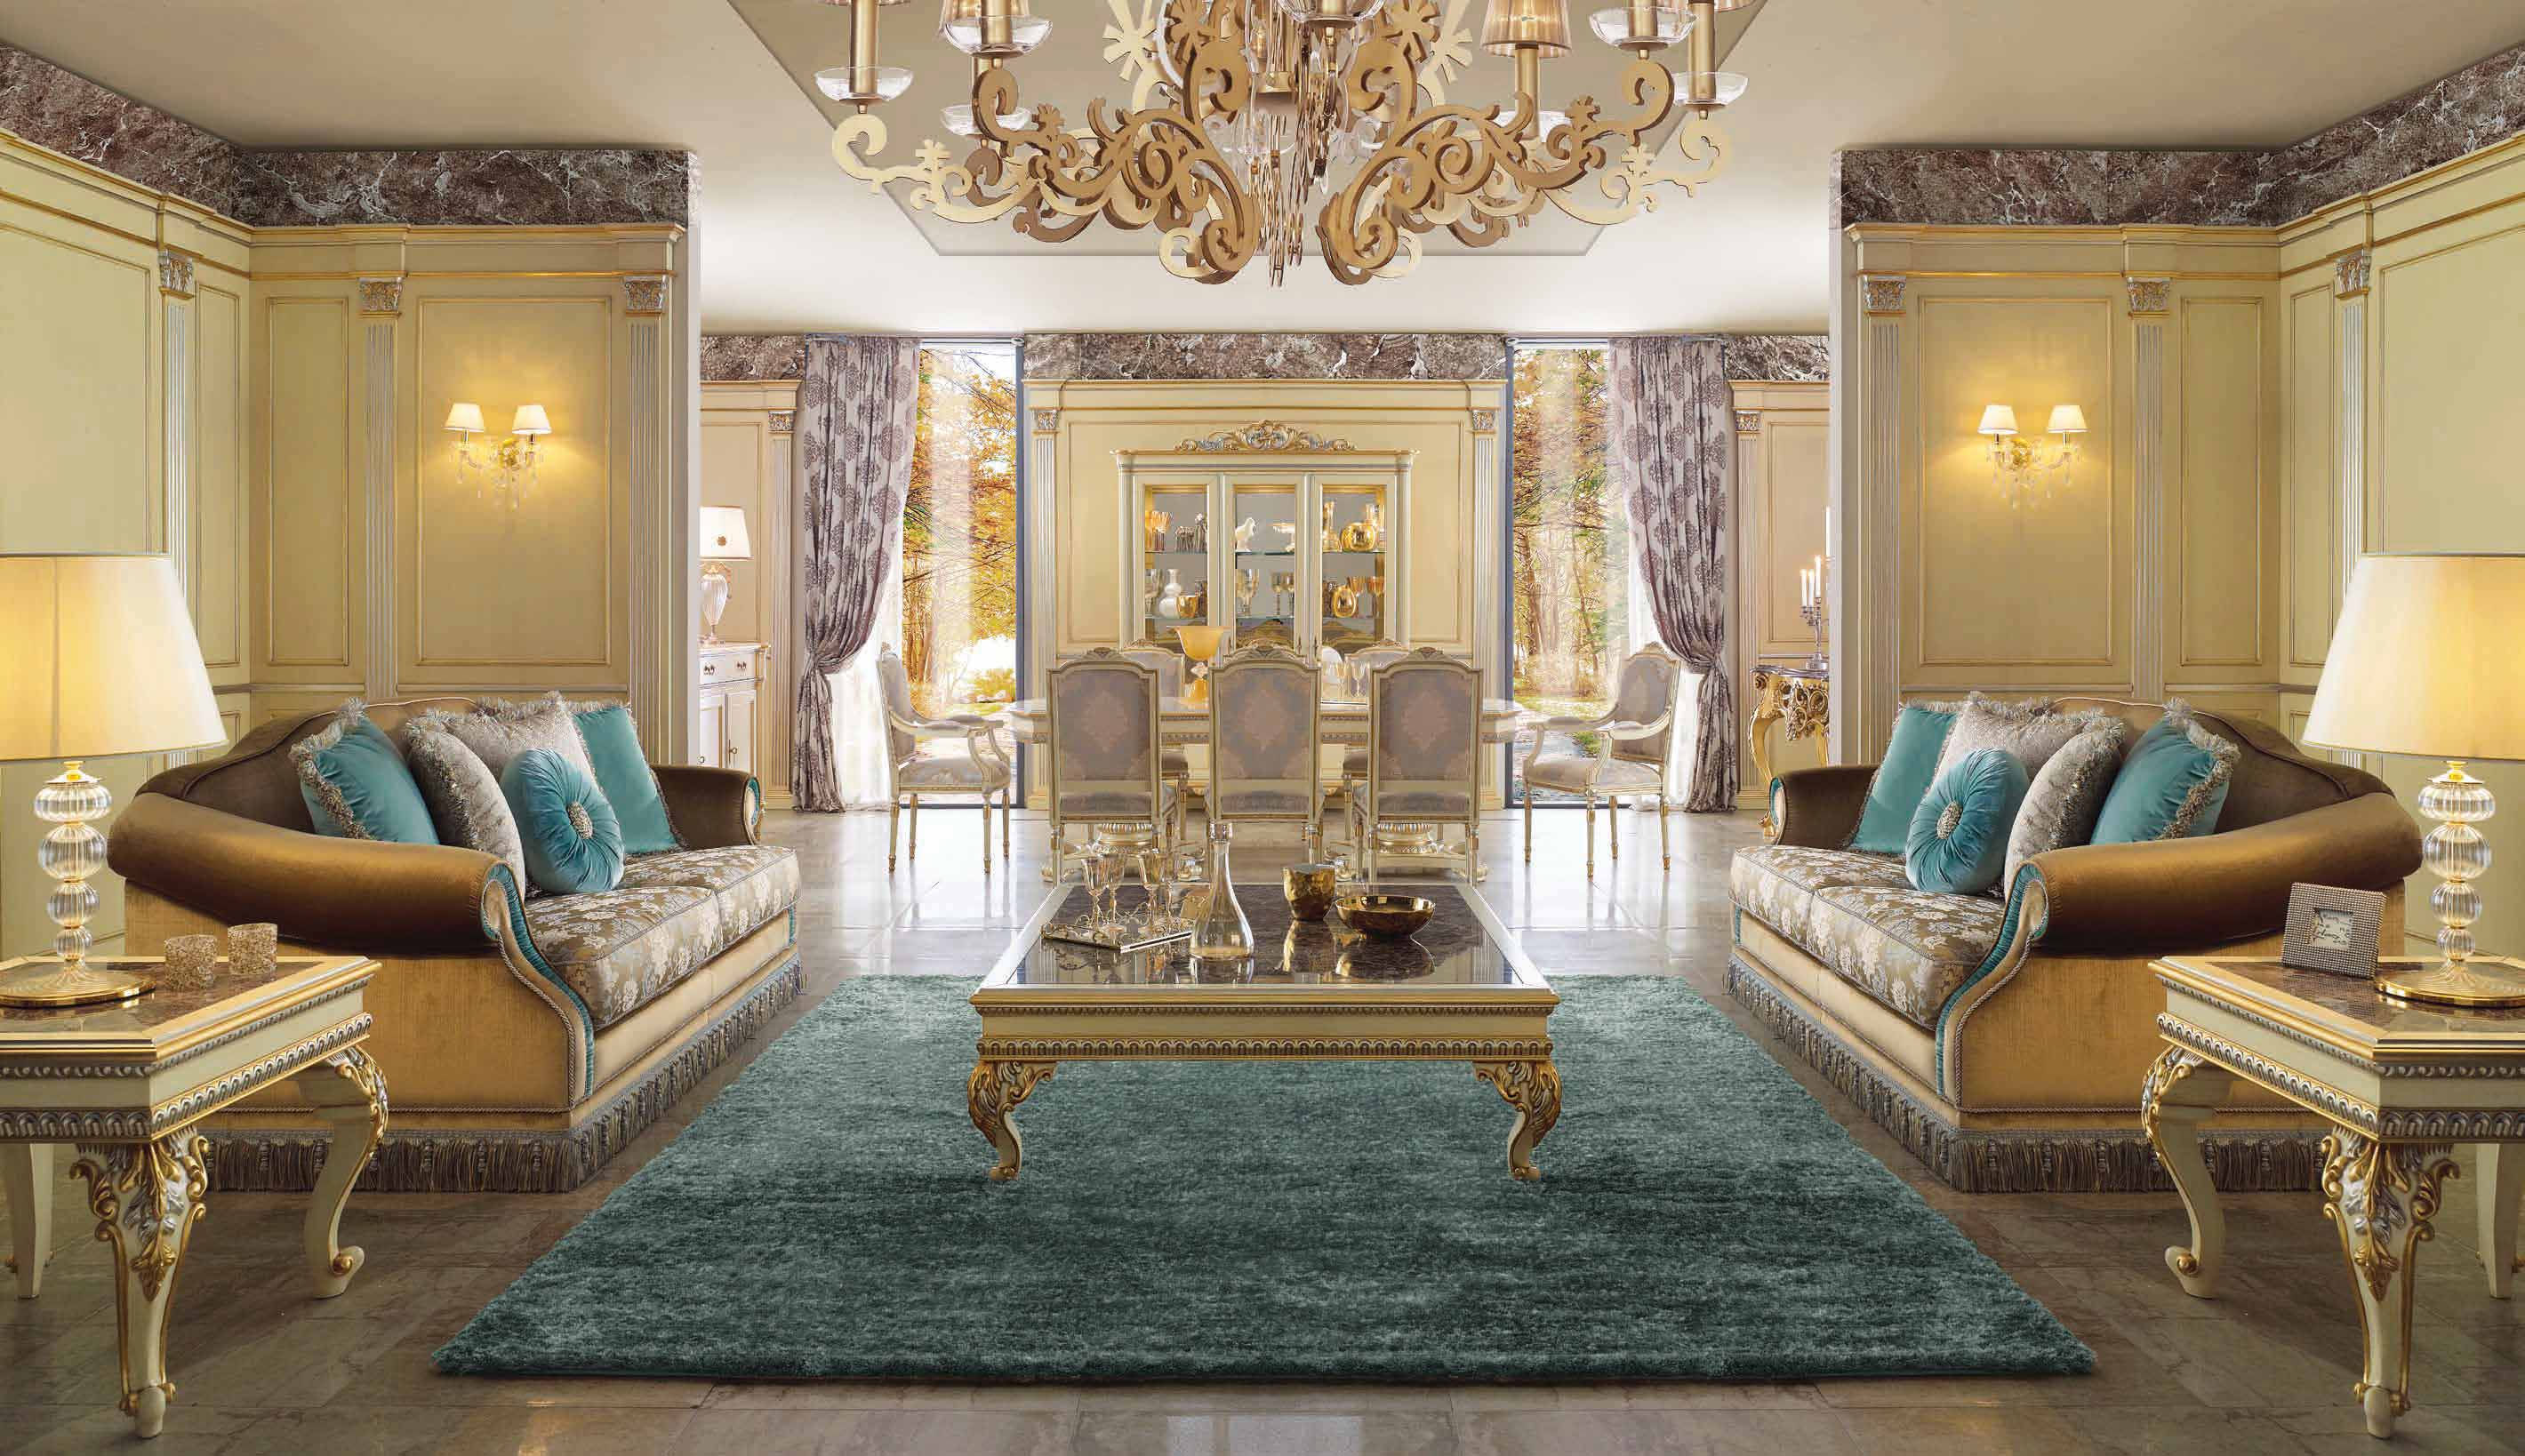 Stunning Designs You Can Expect from Hall 4 at Salone del Mobile Milano 2017 isaloni 2017 Stunning Designs You Can Expect from Hall 4 at ISaloni 2017 Scappini   C